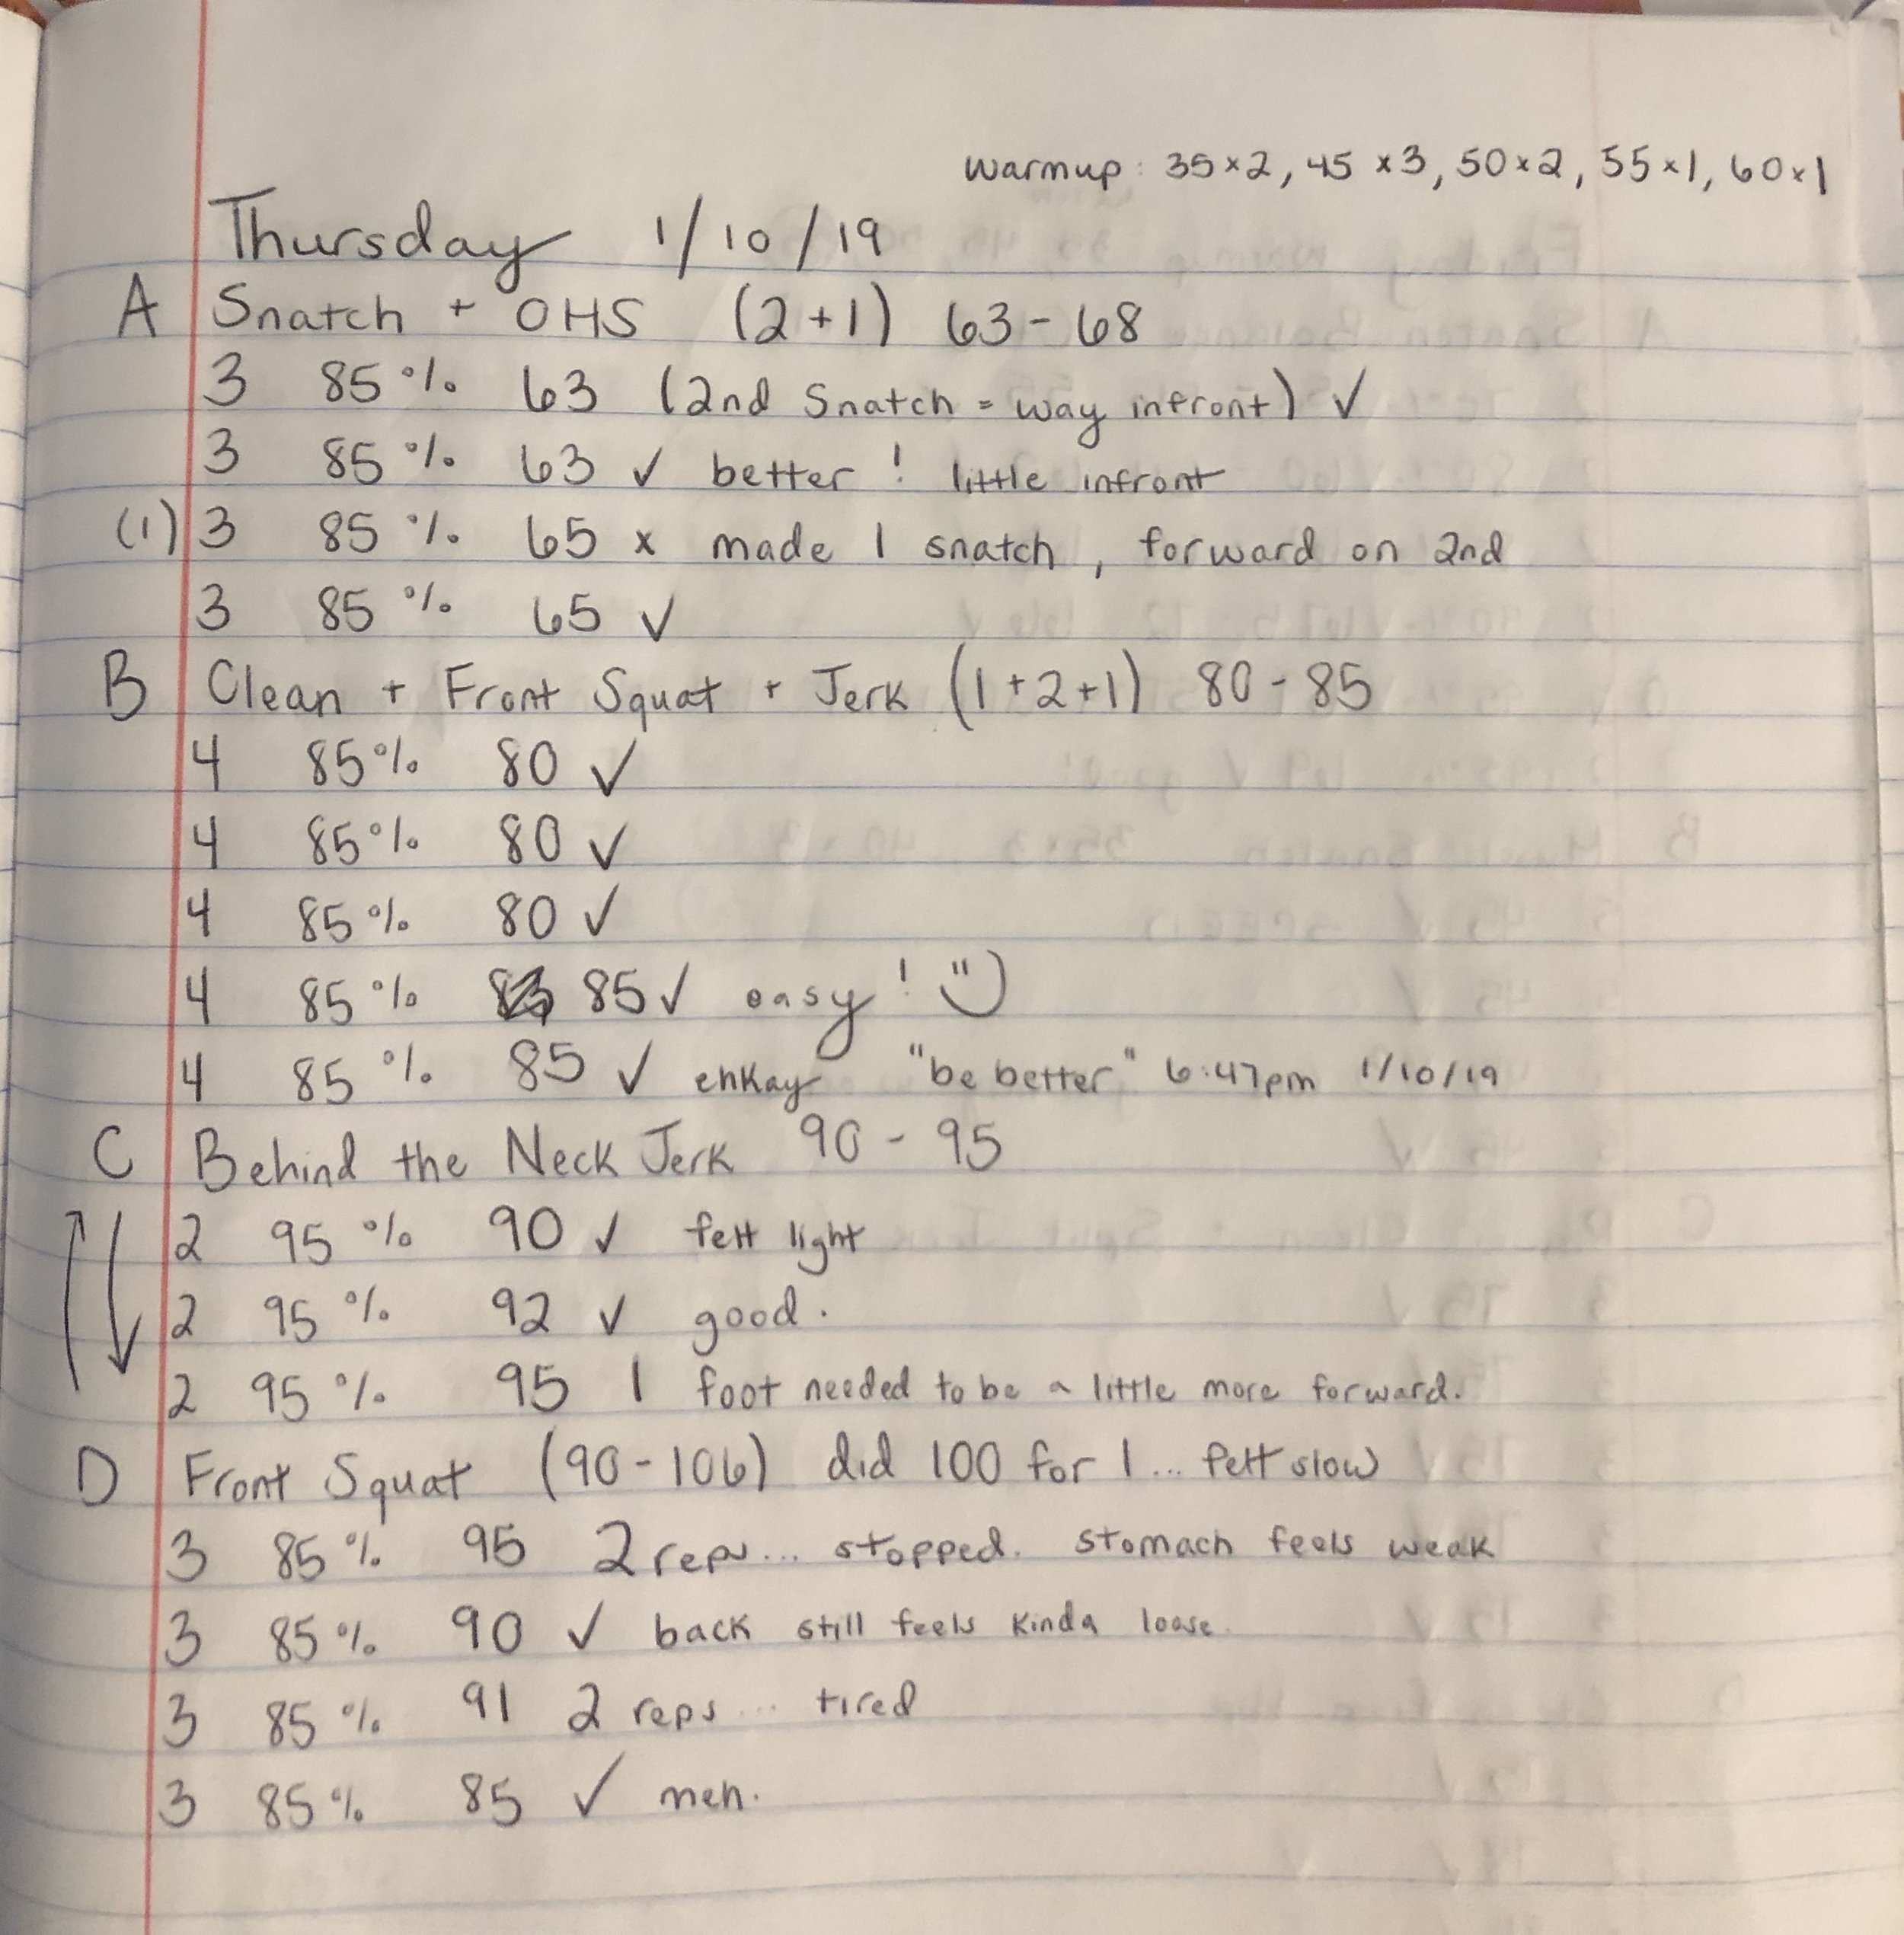 Example of a personal training log